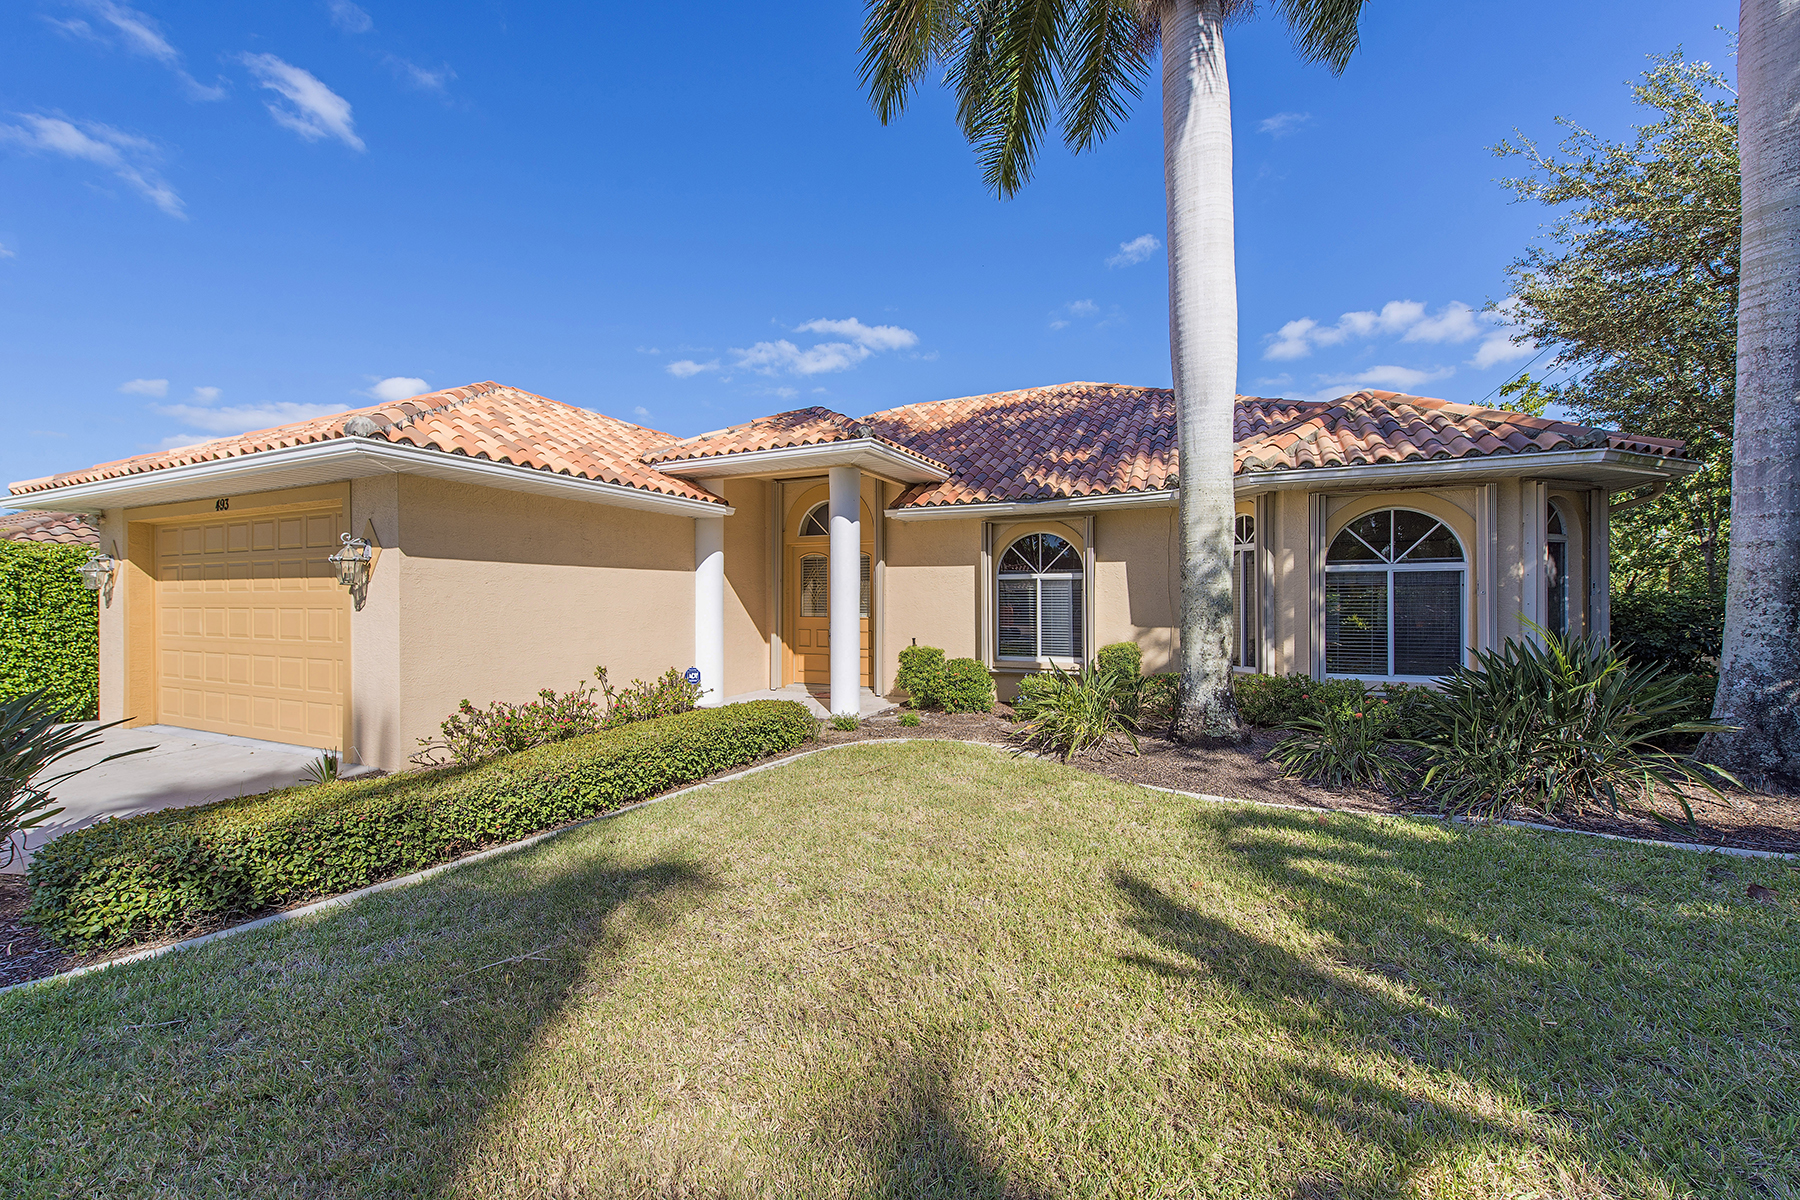 Single Family Home for Rent at VANDERBILT BEACH - CONNERS 493 Flamingo Ave, Naples, Florida 34108 United States